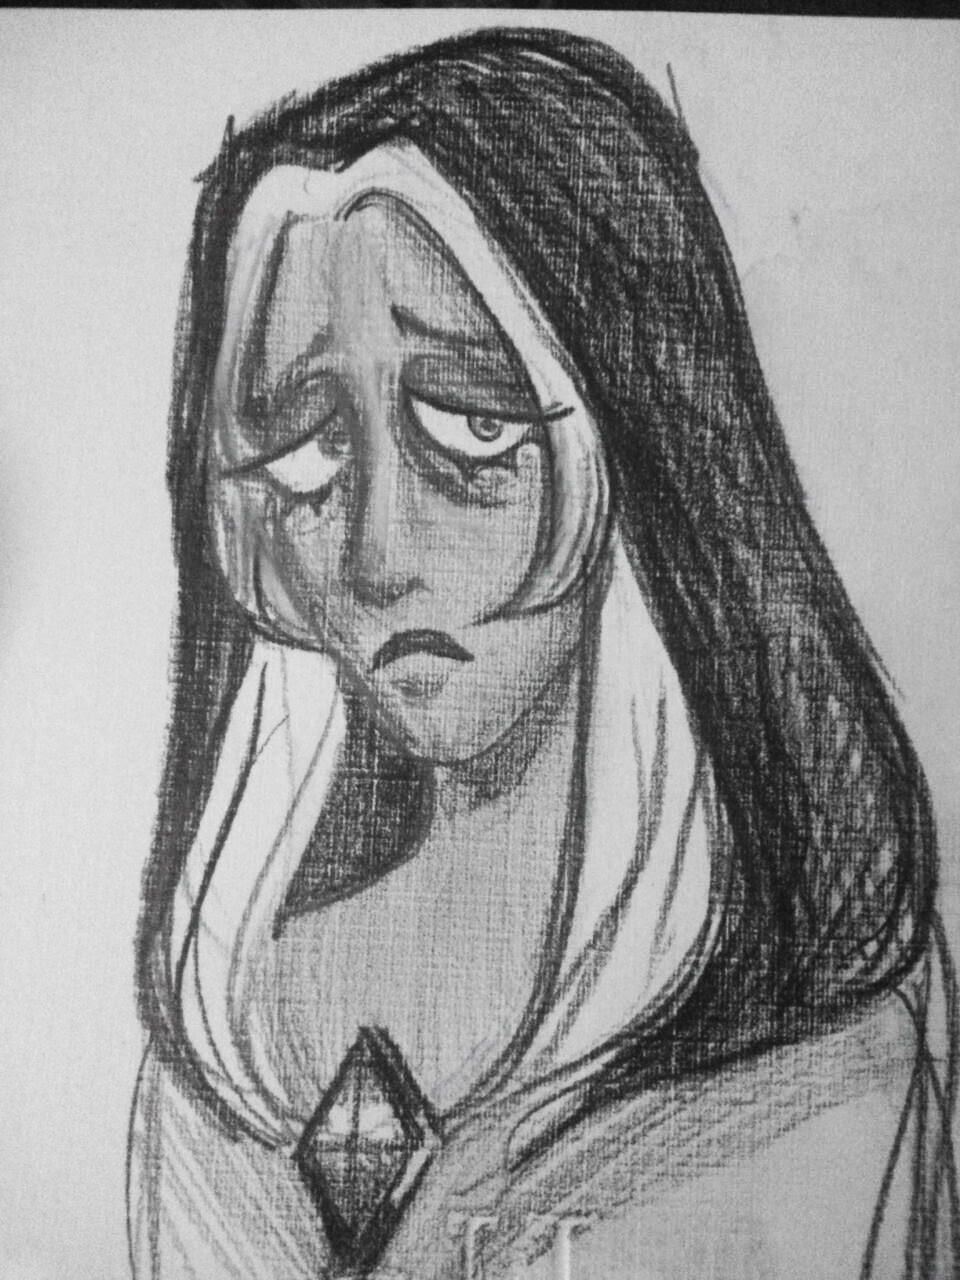 tfw you see the new stevenbomb but have no motivation to draw